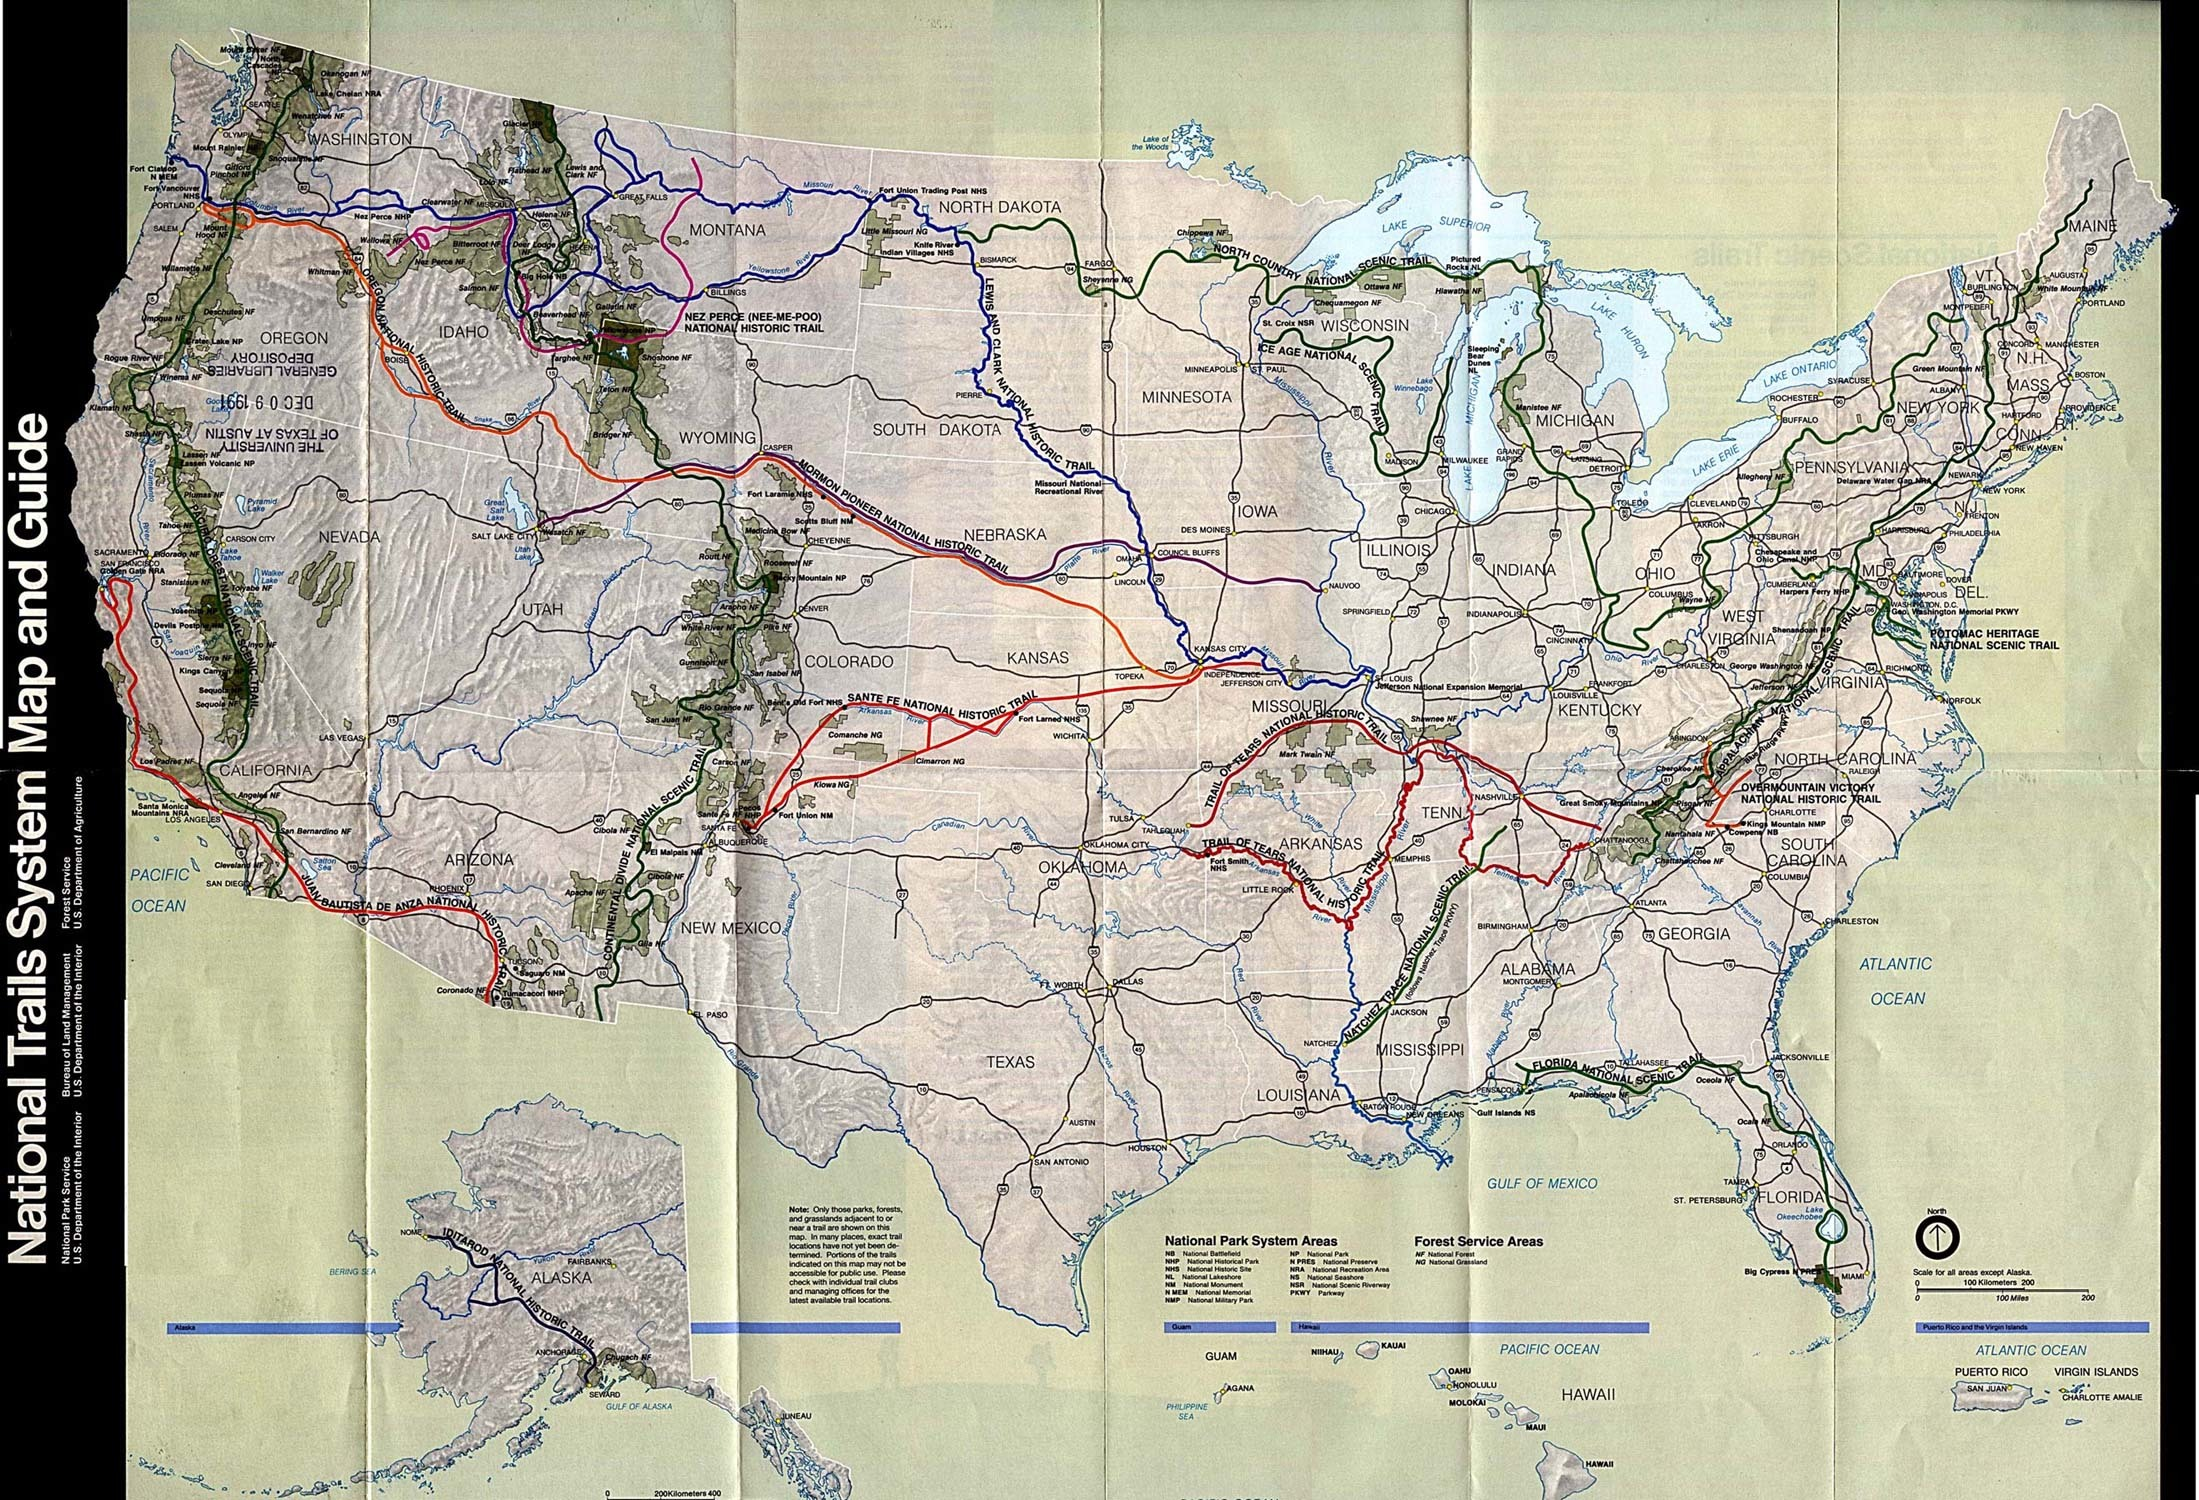 National Parks Trails Map HD Wallpaper